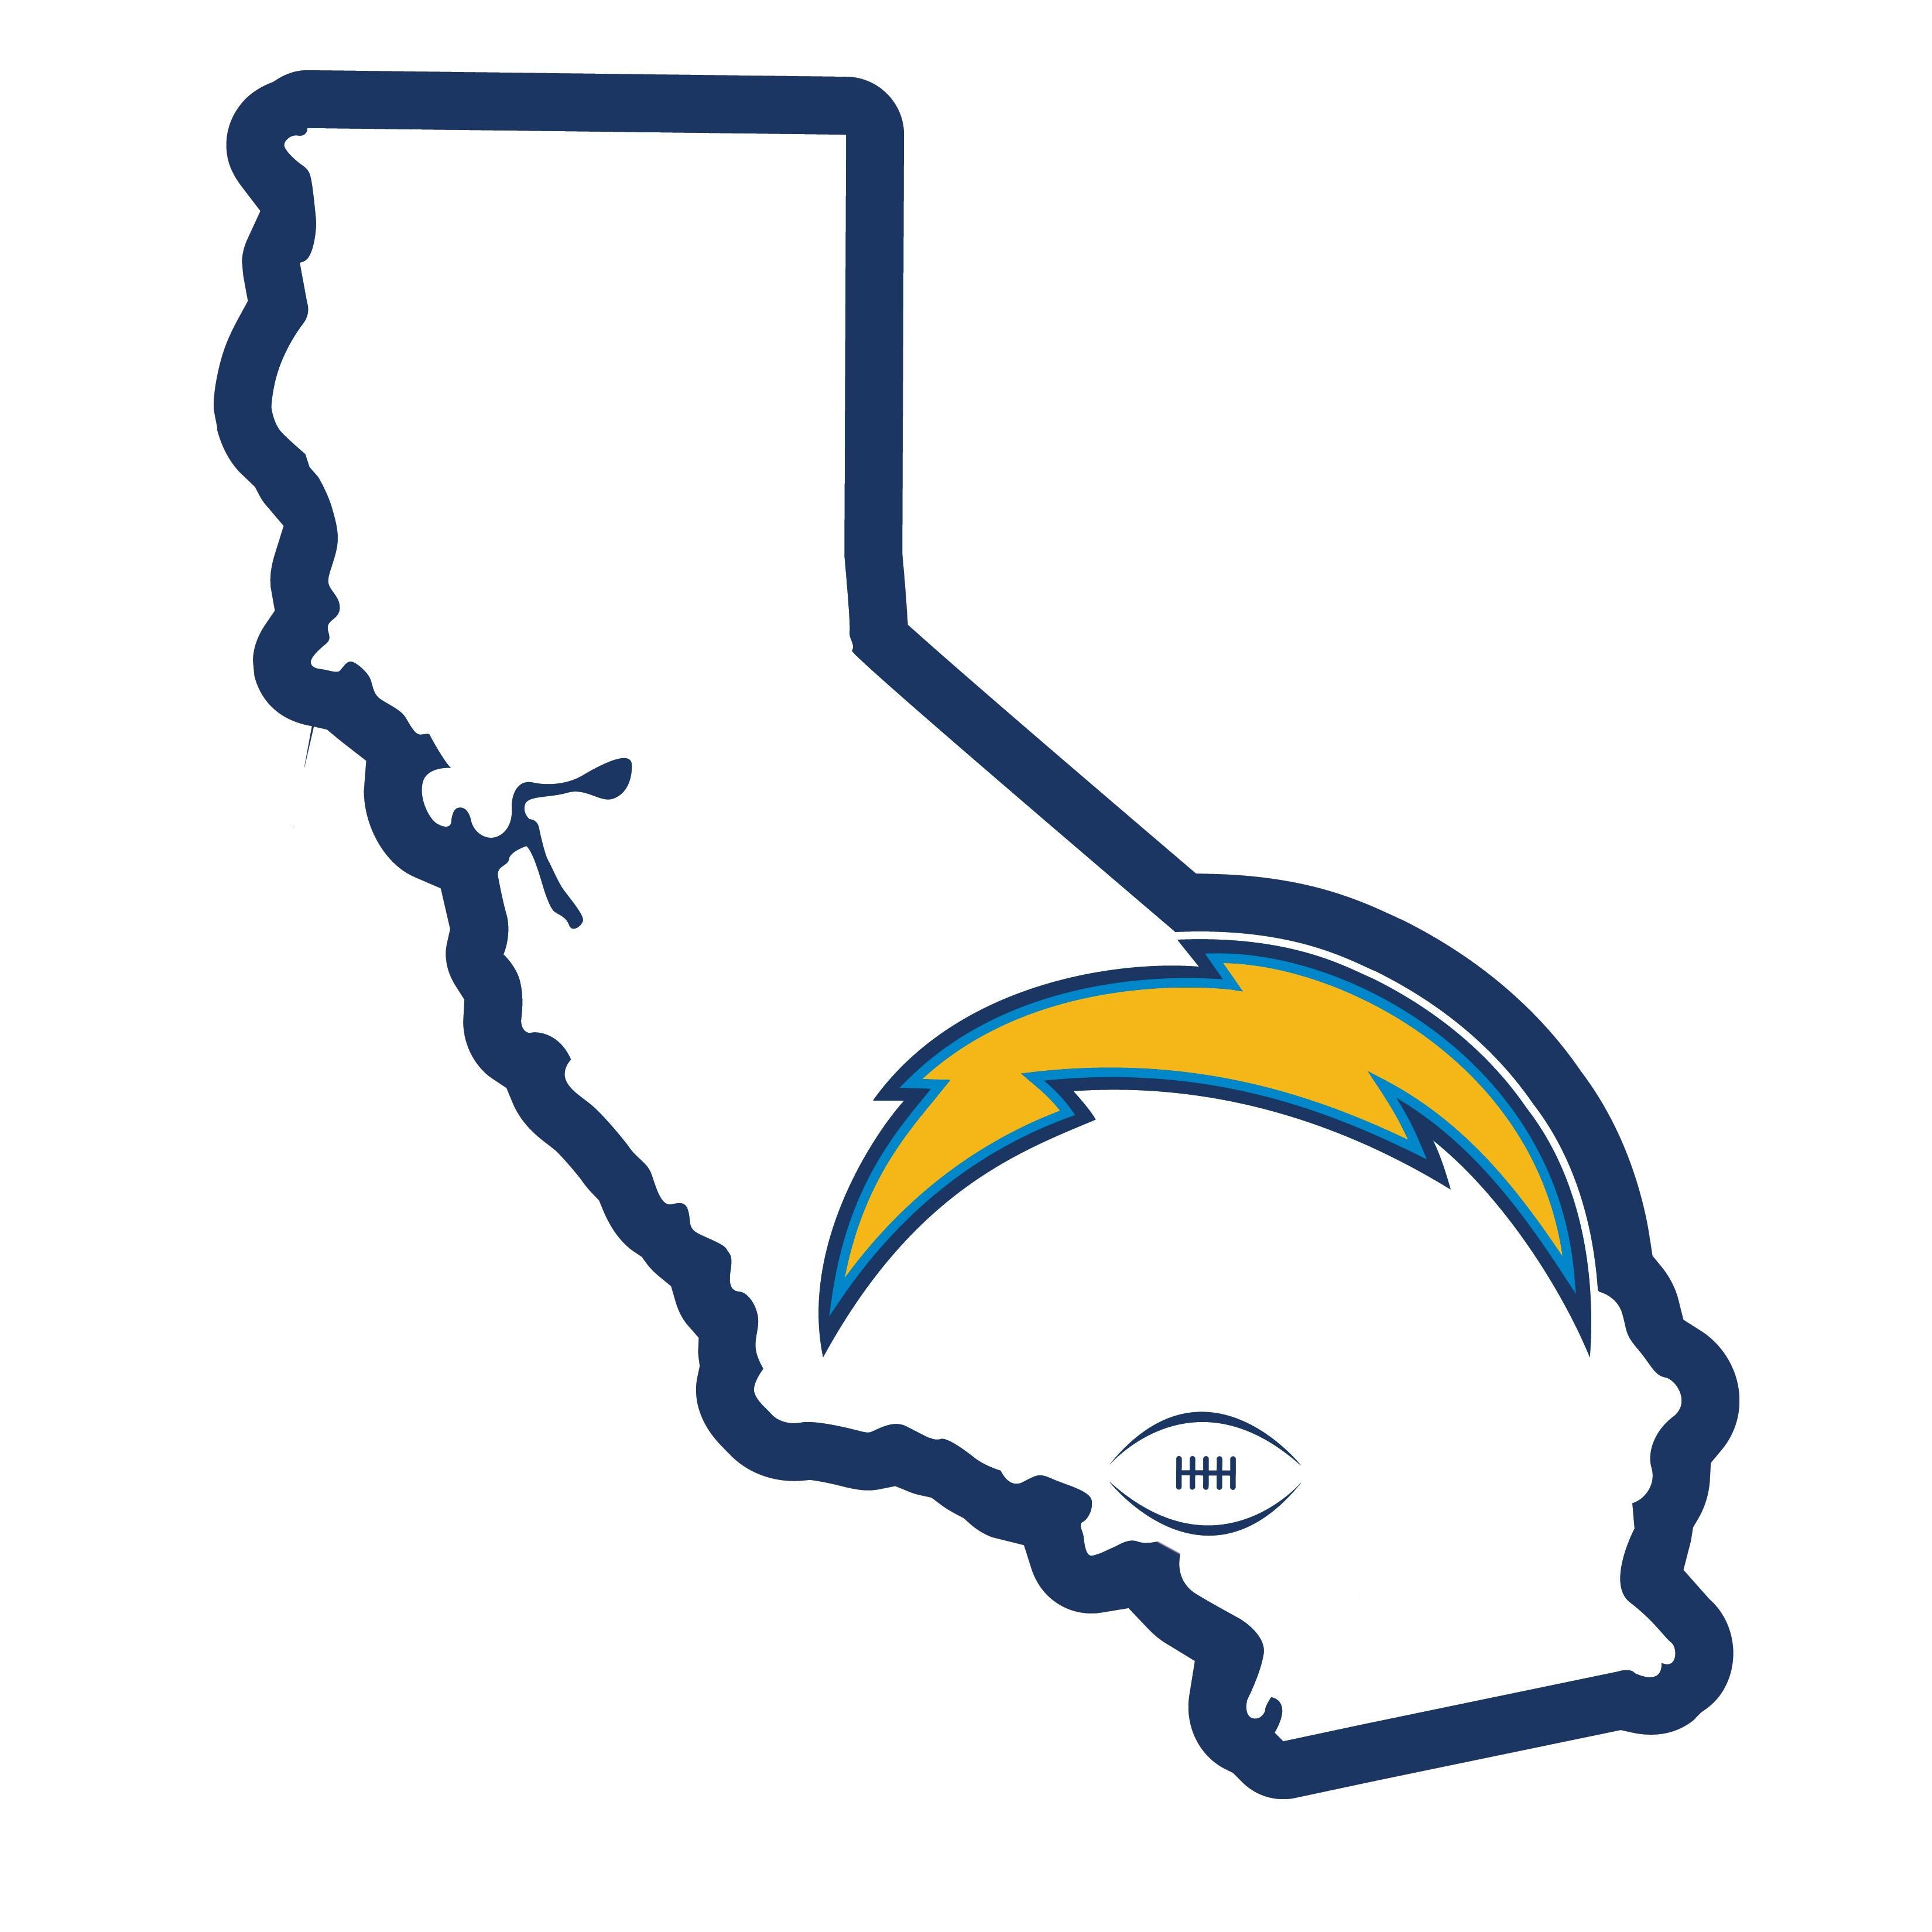 Los Angeles Chargers Home State 11 Inch Magnet - Whether you are caravaning to the game or having a tailgate party make sure you car is wearing its fan gear with our extra large, 11 inch Los Angeles Chargers home state magnets. These striking magnets can be easily placed on for game day and removed without he residue left by decals. The design features a bright state outline with the location of the team highlighted with a football and a large team logo.